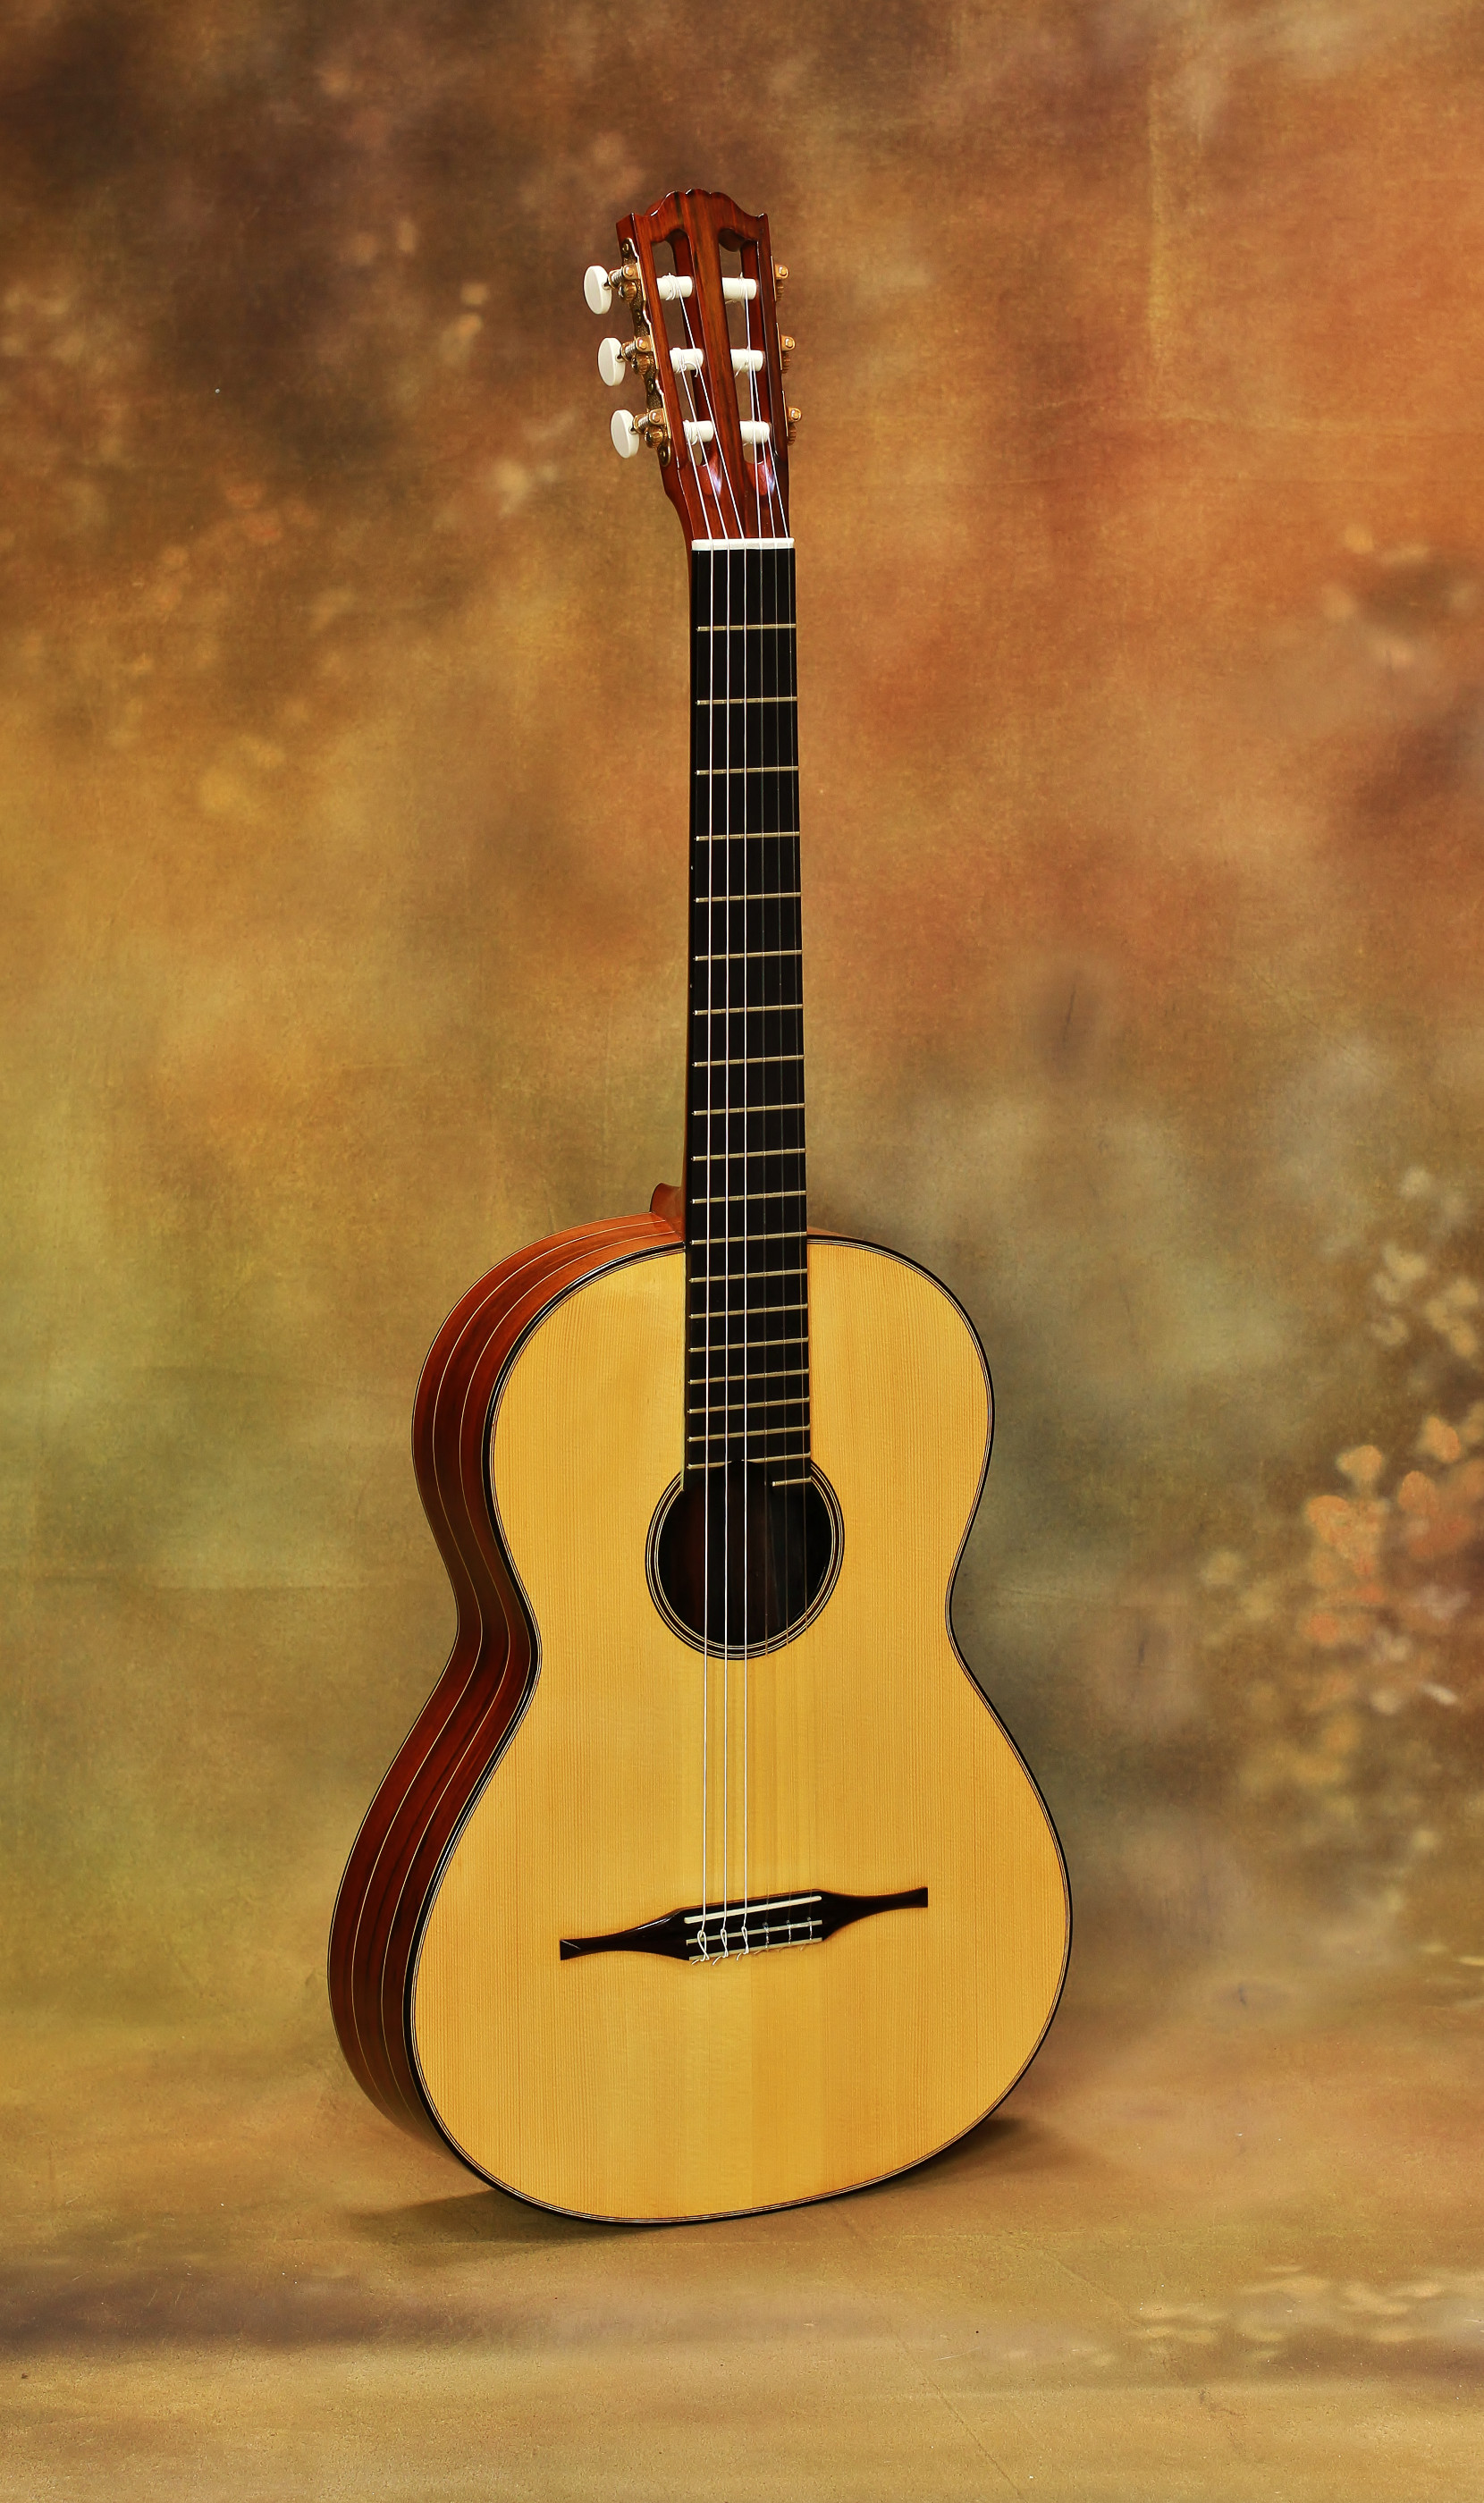 tony johnson classical guitar for sale by savage classical guitar. Black Bedroom Furniture Sets. Home Design Ideas